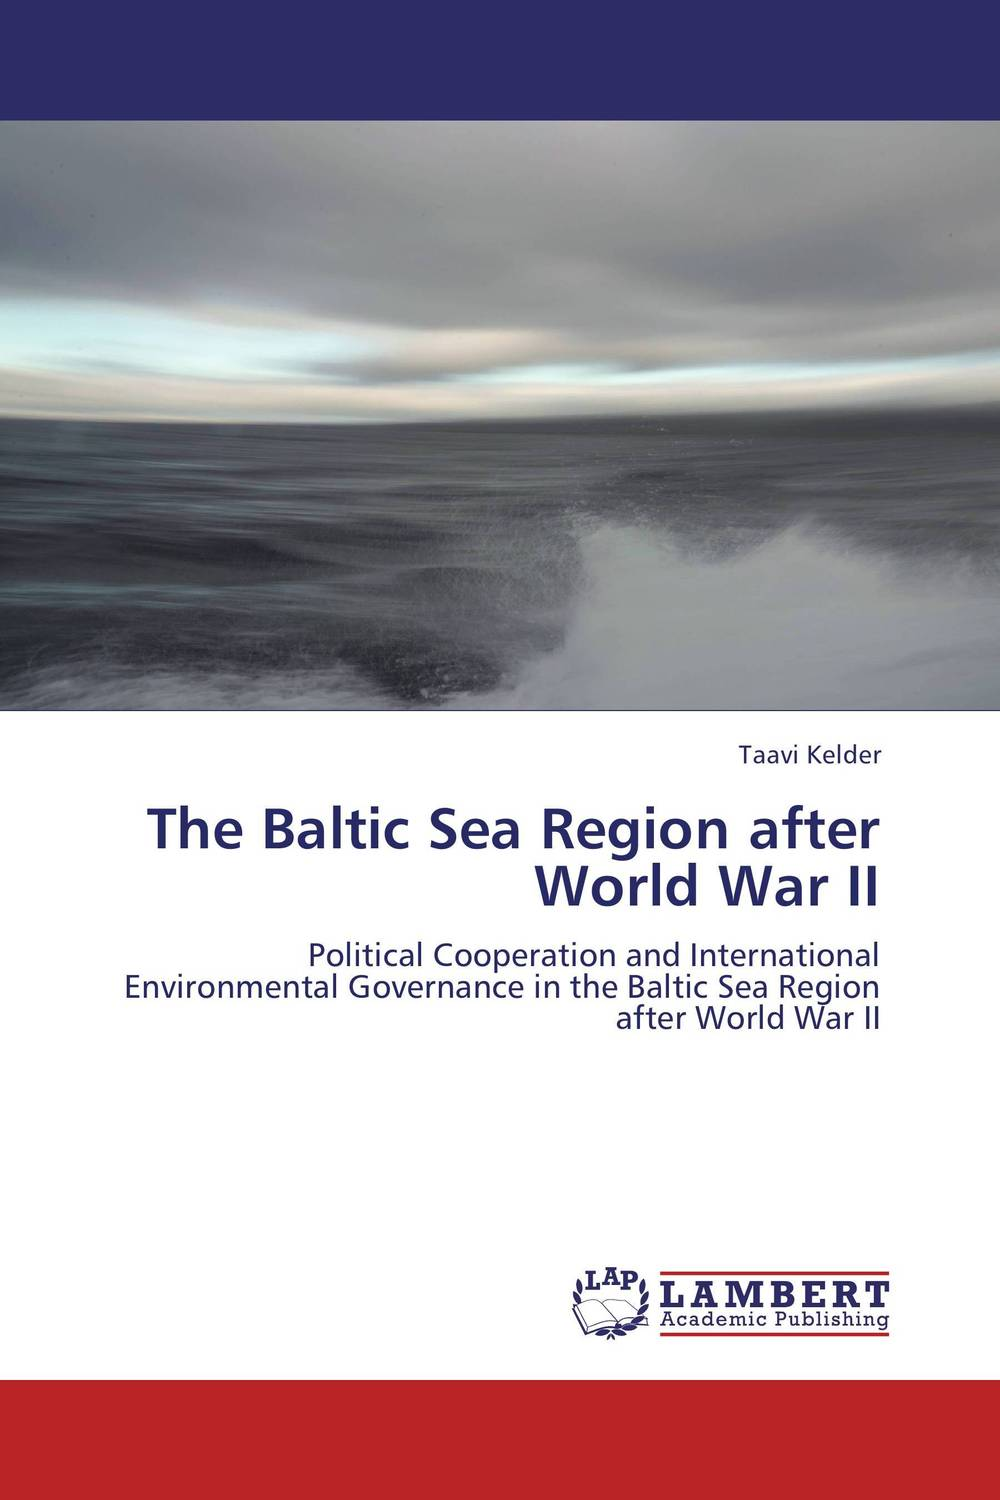 The Baltic Sea Region after World War II сборник статей ethnic conflicts in the baltic states in post soviet period